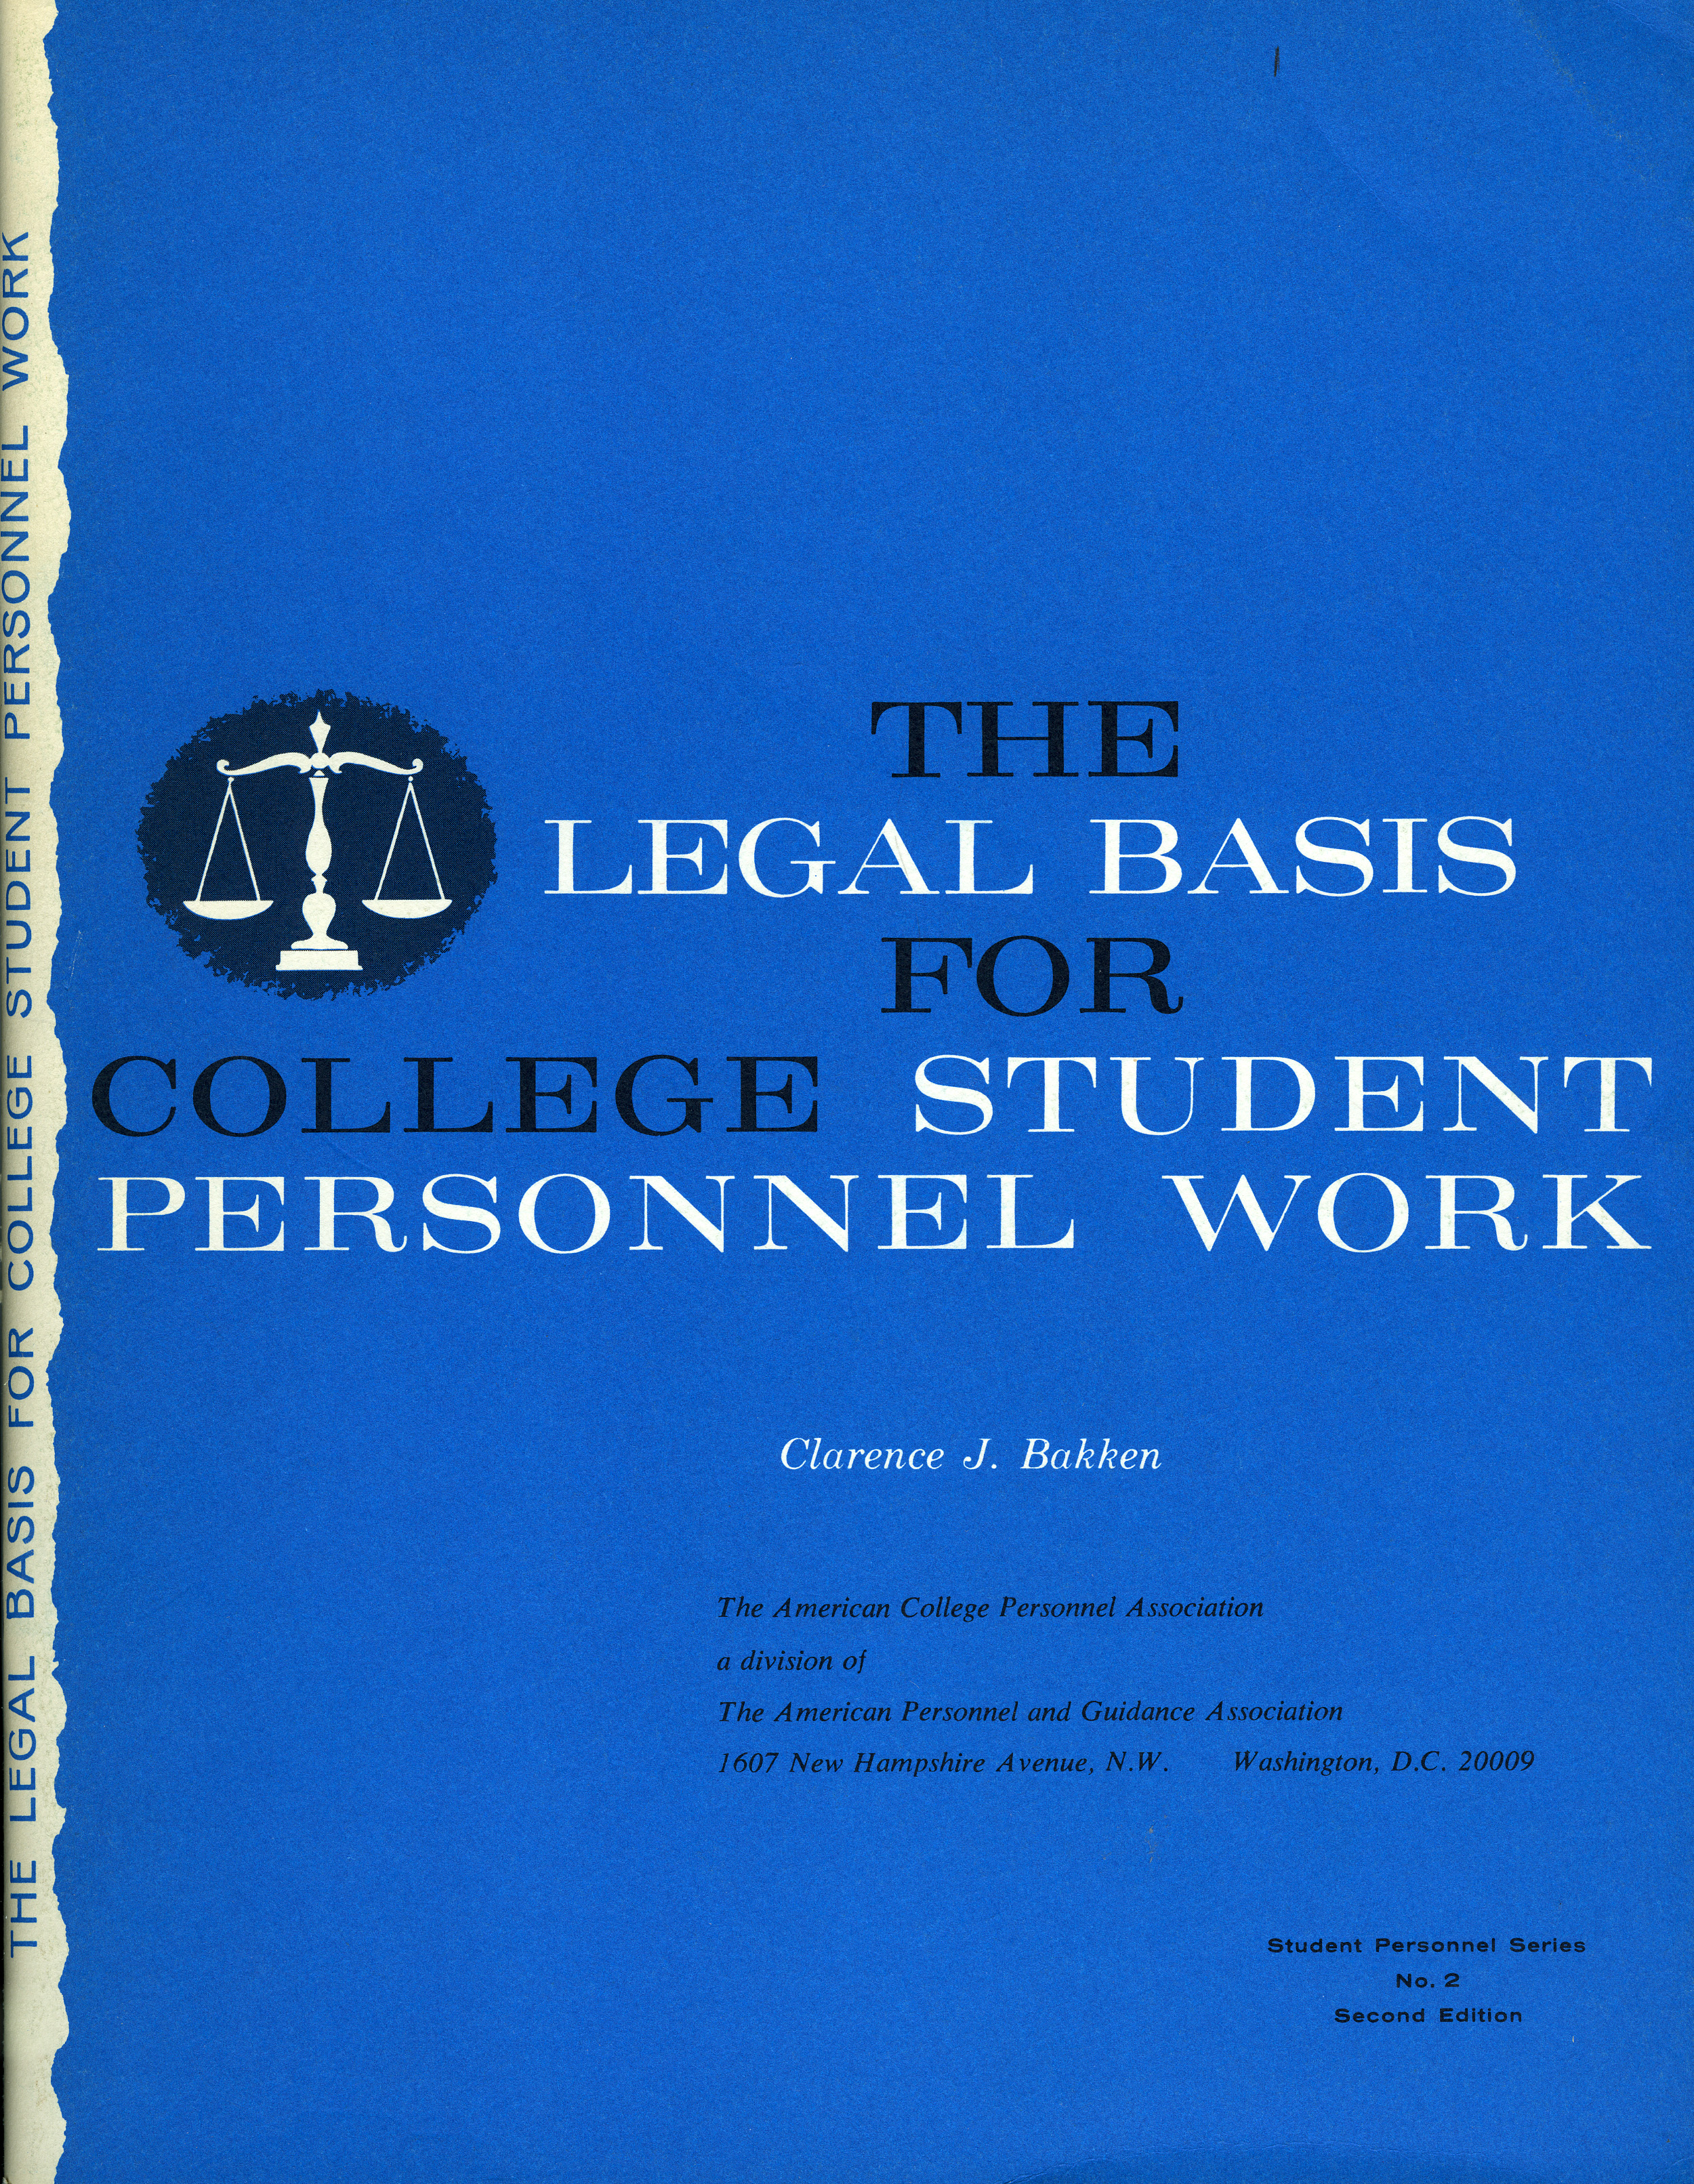 Legal Basis for College Student Personnel Work